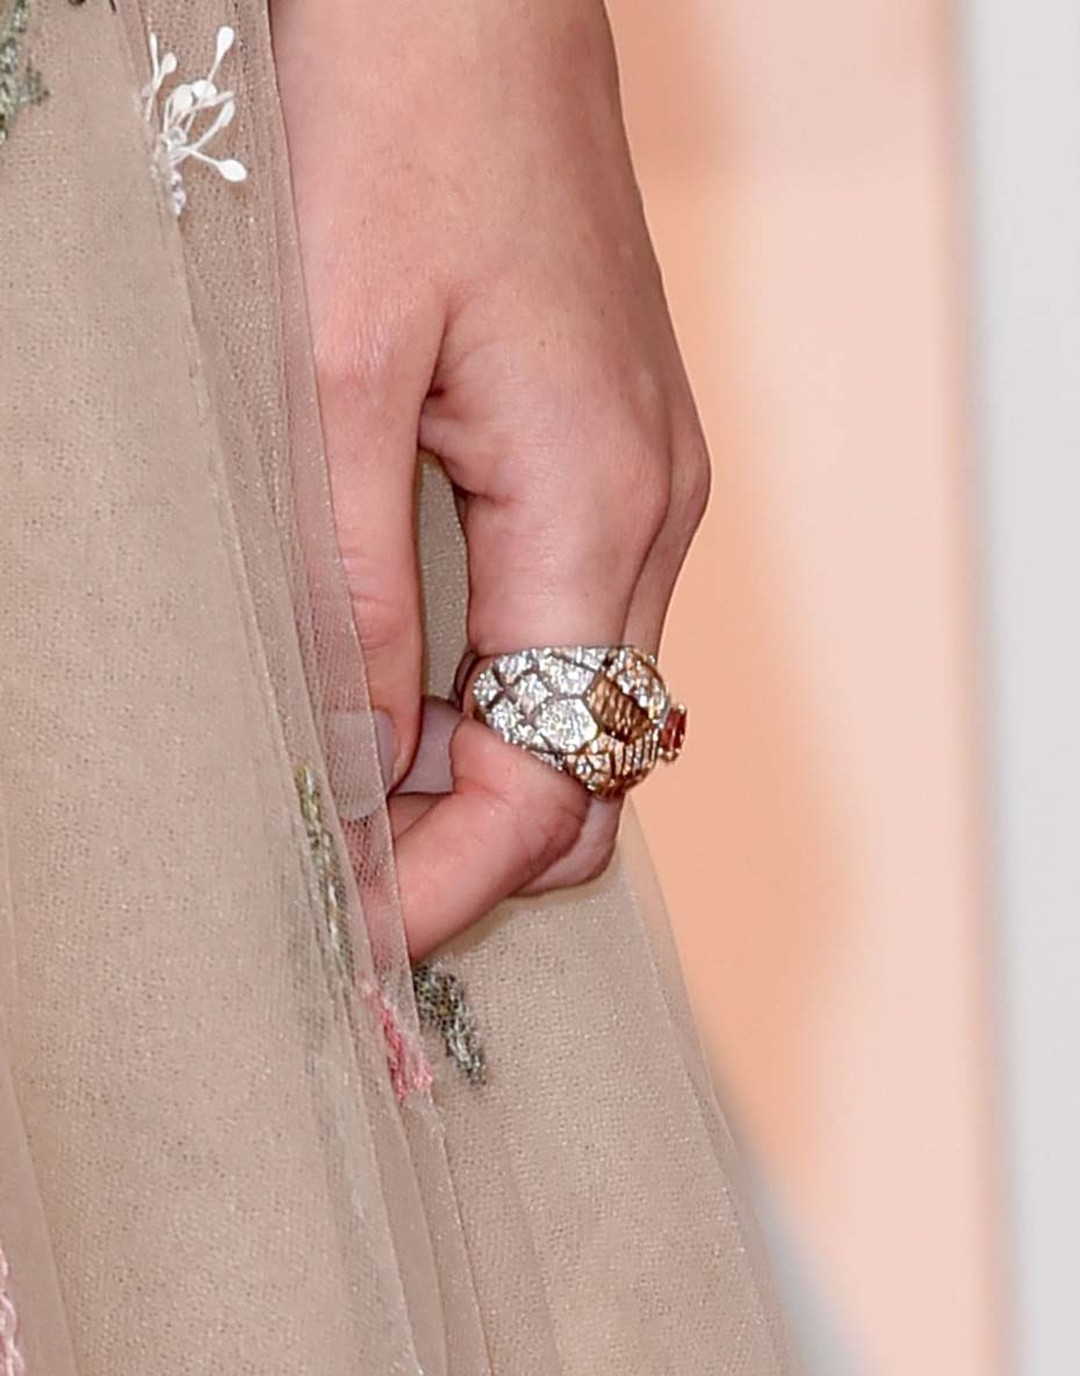 Actress Keira Knightley added this Chanel ring to her Oscars red carpet jewelry, perfectly complementing her dreamy, floral embroidered Valentino gown.